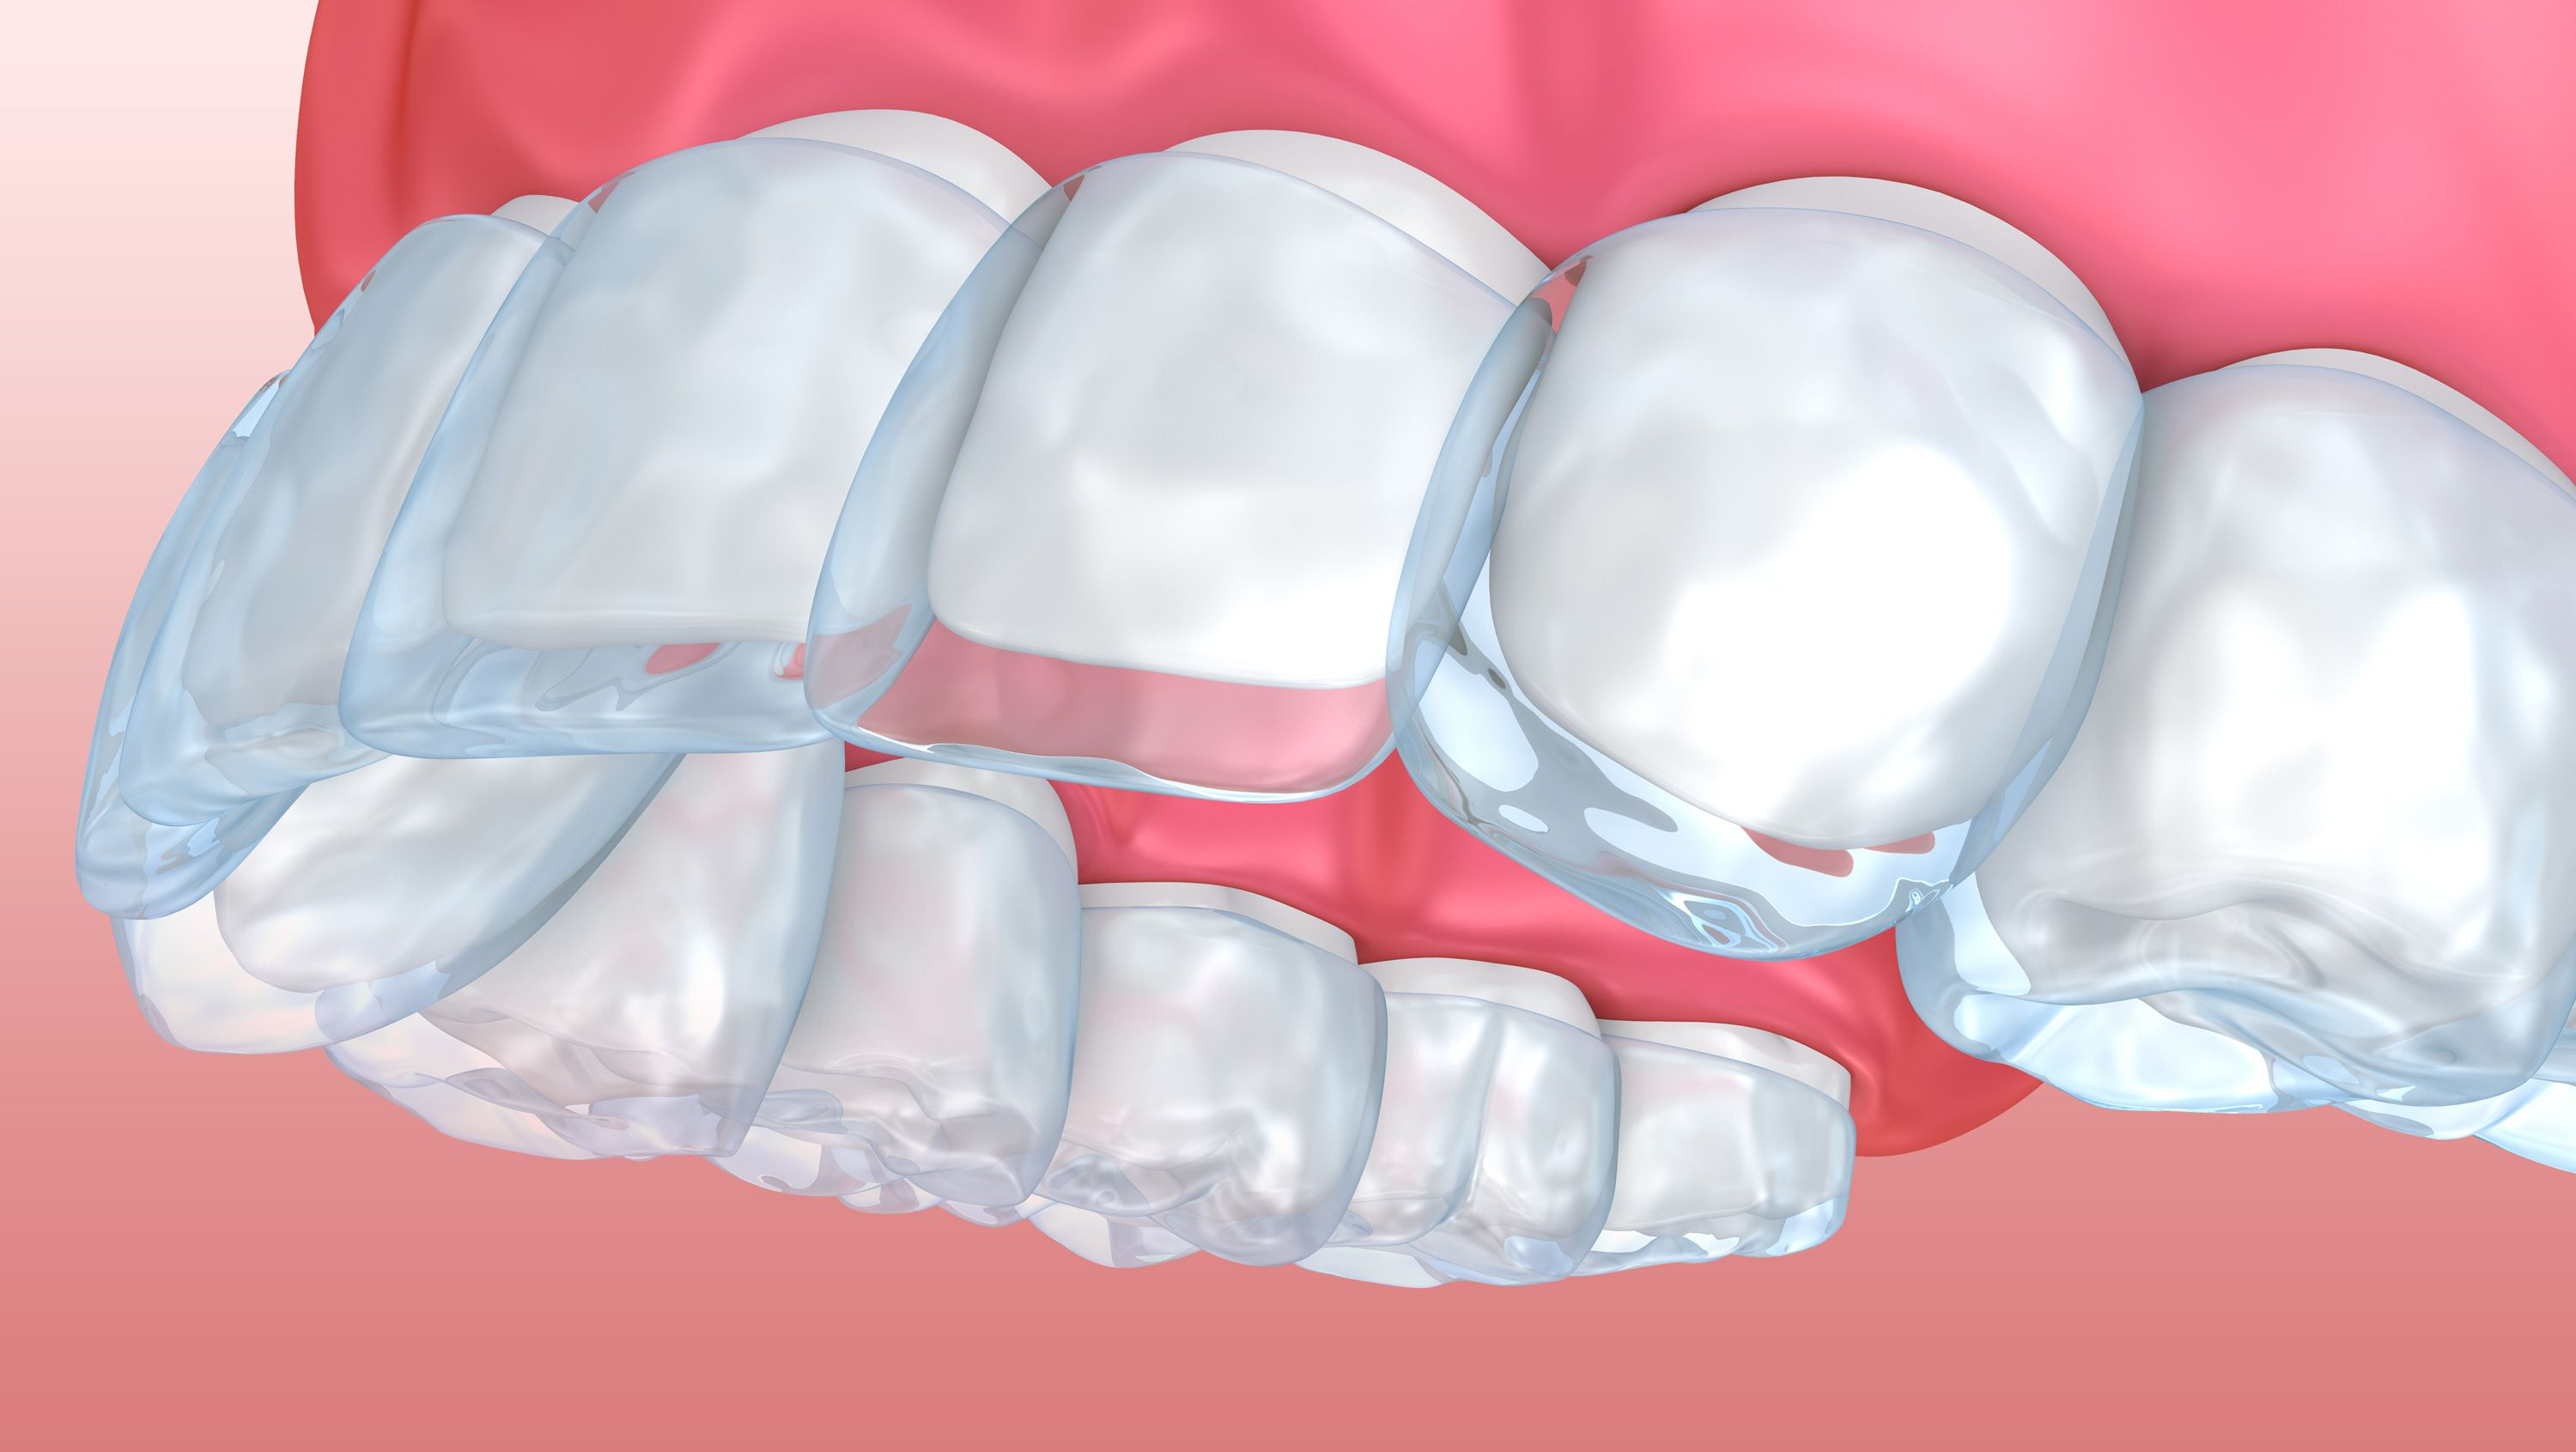 An illustration of Invisalign on the teeth